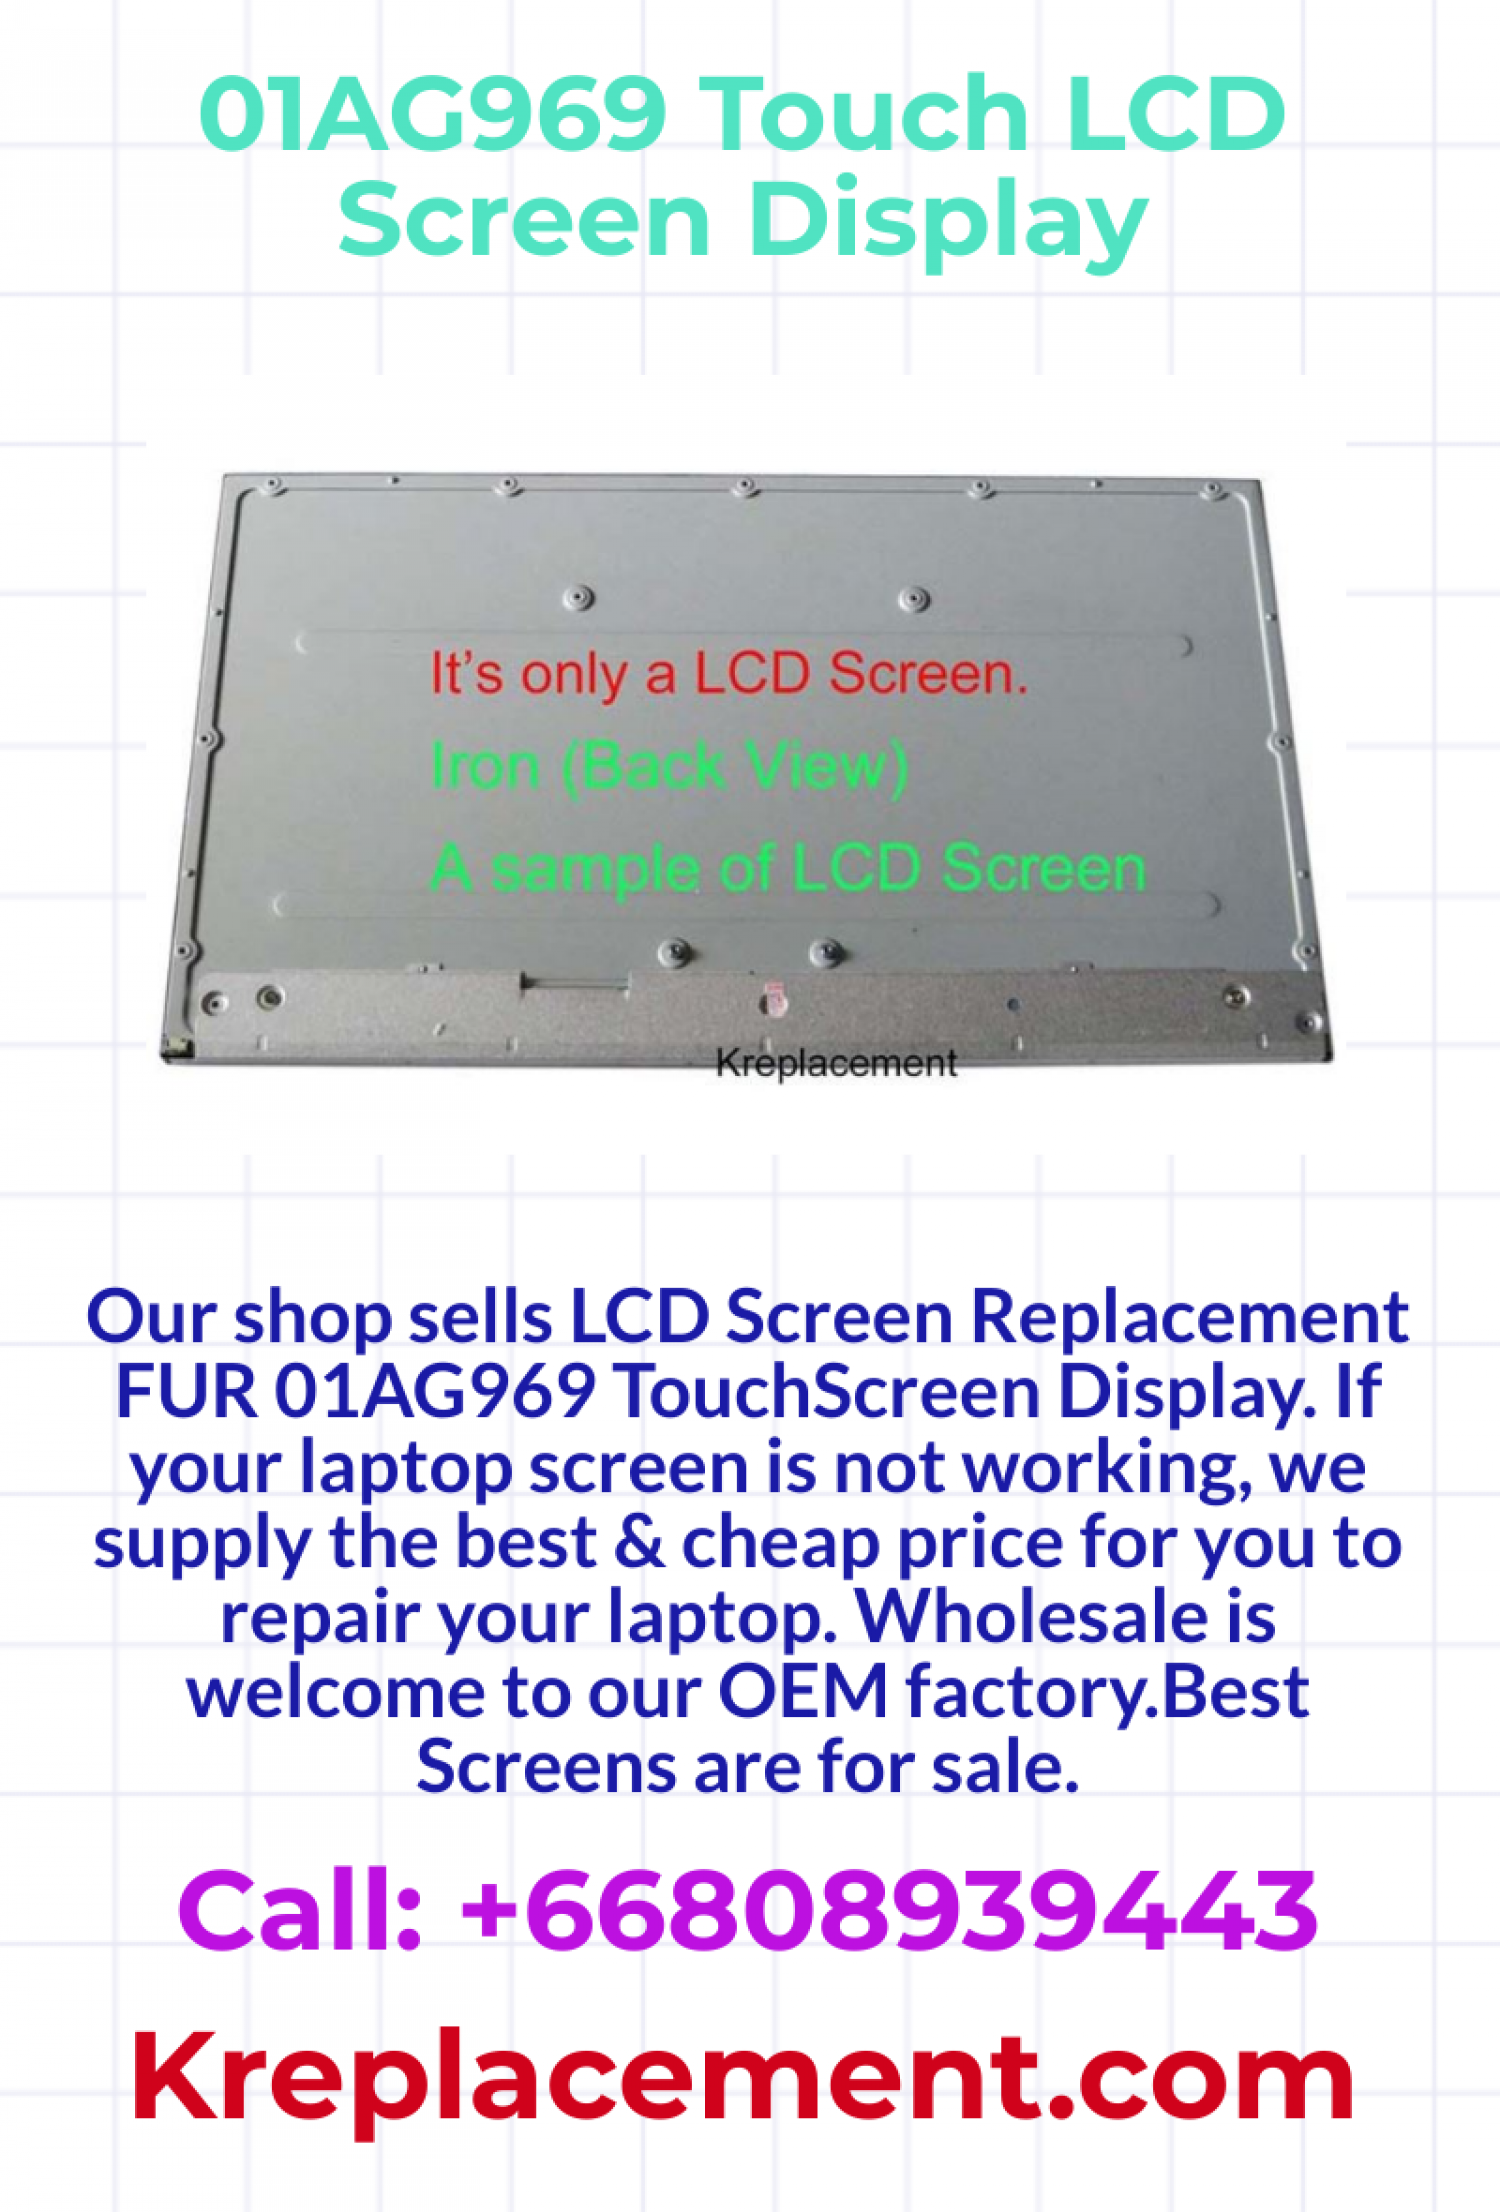 01AG969 Touch LCD Screen Display Infographic